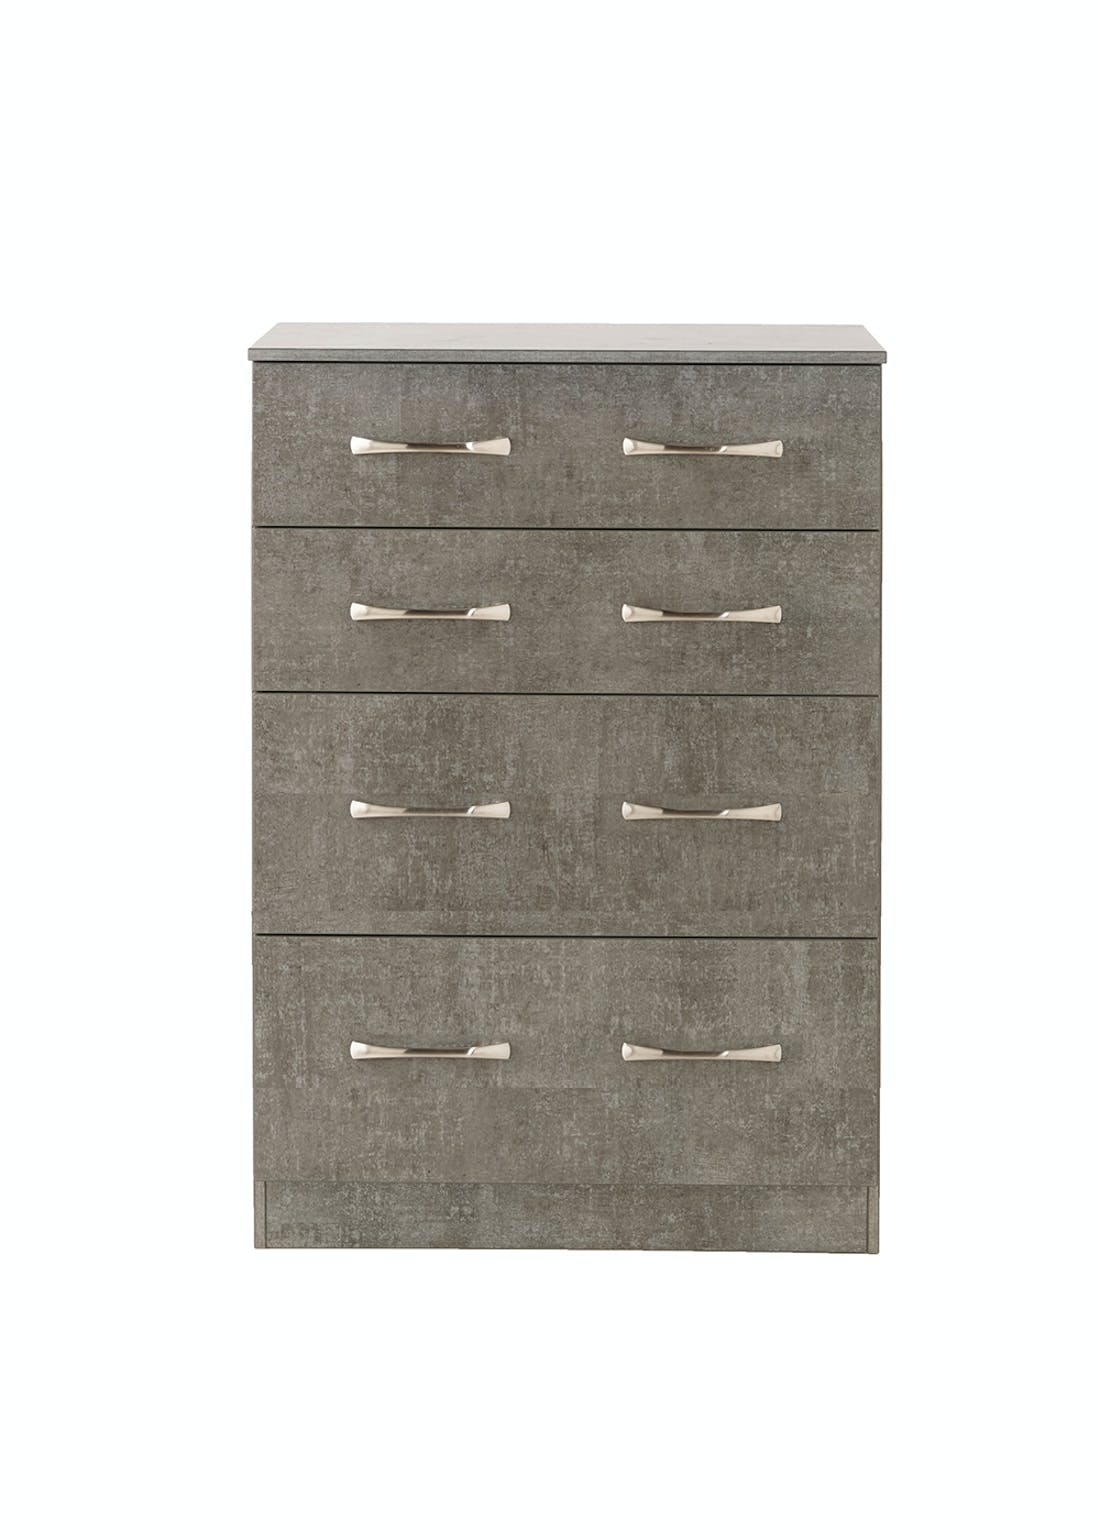 Swift Roma 4 Drawer Deep Chest (107.5cm x 76.5cm x 41.5cm)